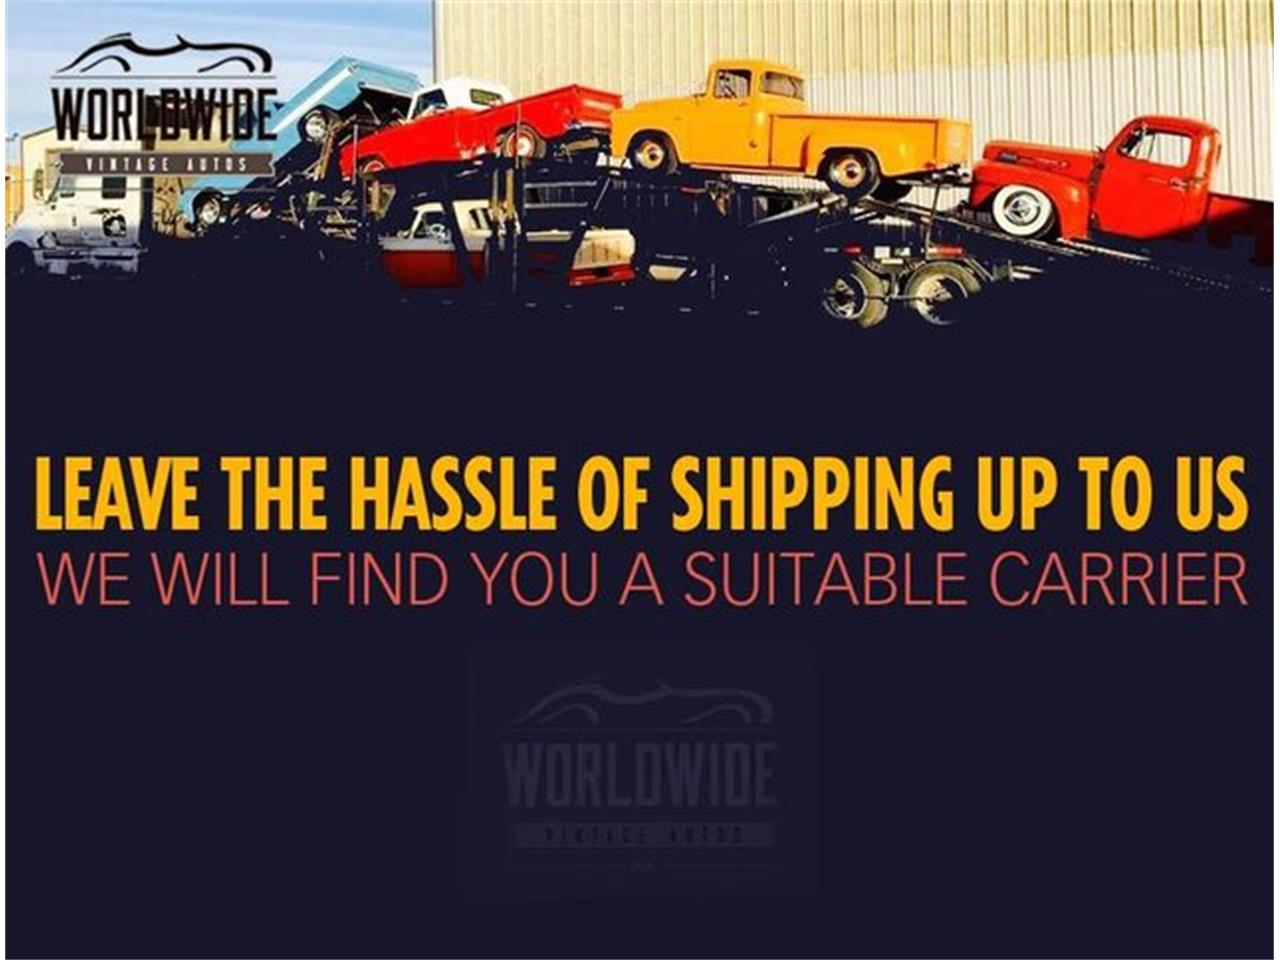 Large Picture of 1972 F100 - $11,900.00 Offered by Worldwide Vintage Autos - QAKU